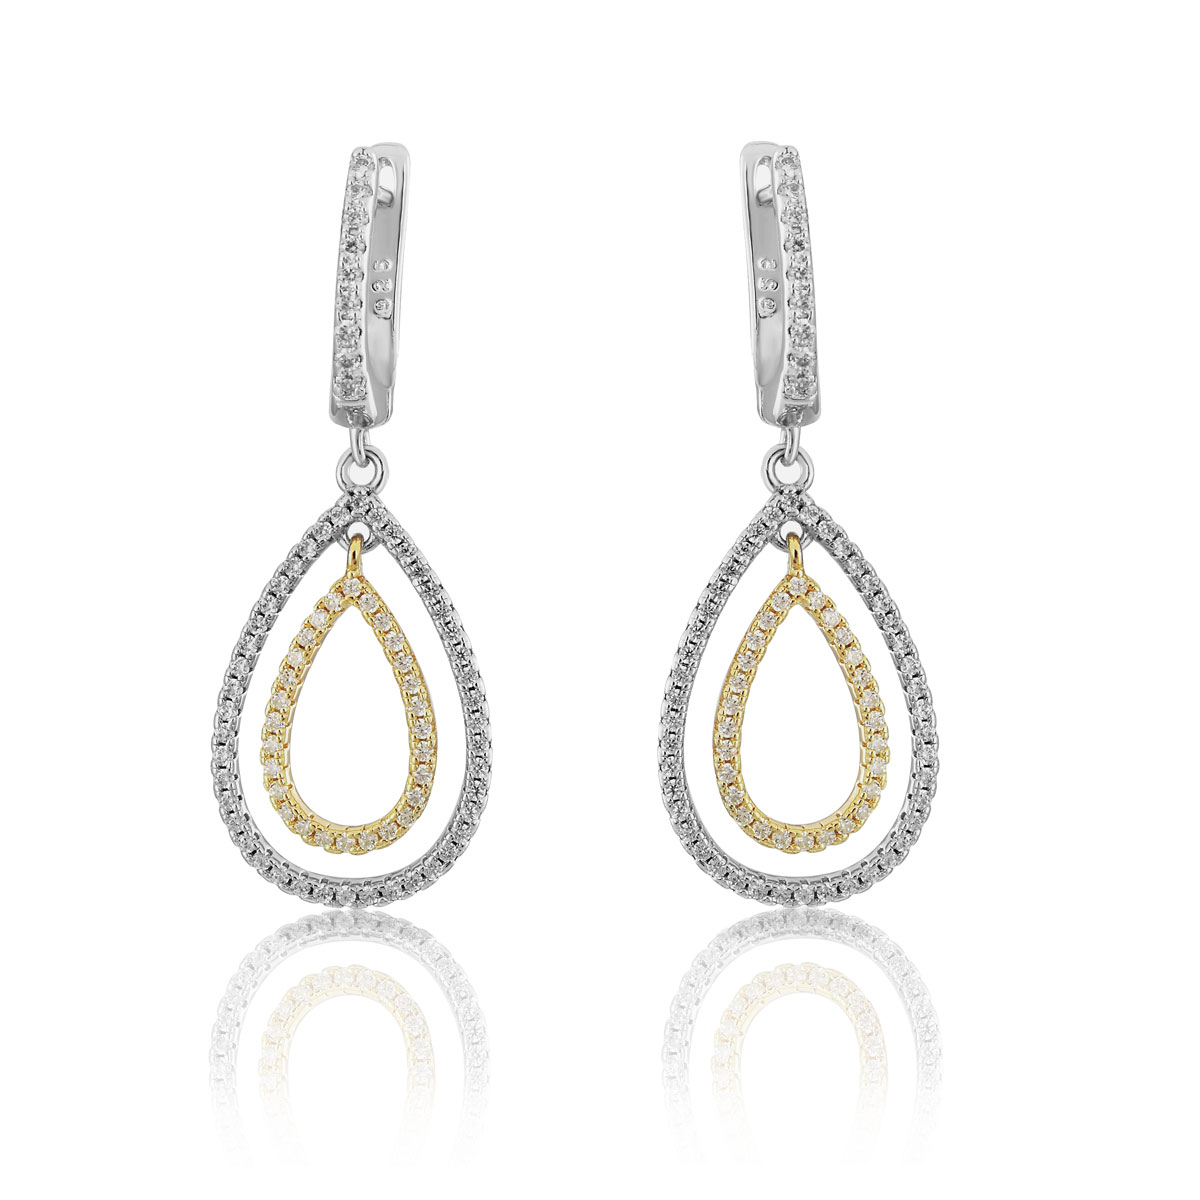 Cashs Ireland, Teardrop Sterling Silver and Gold Pave Pierced Earrings